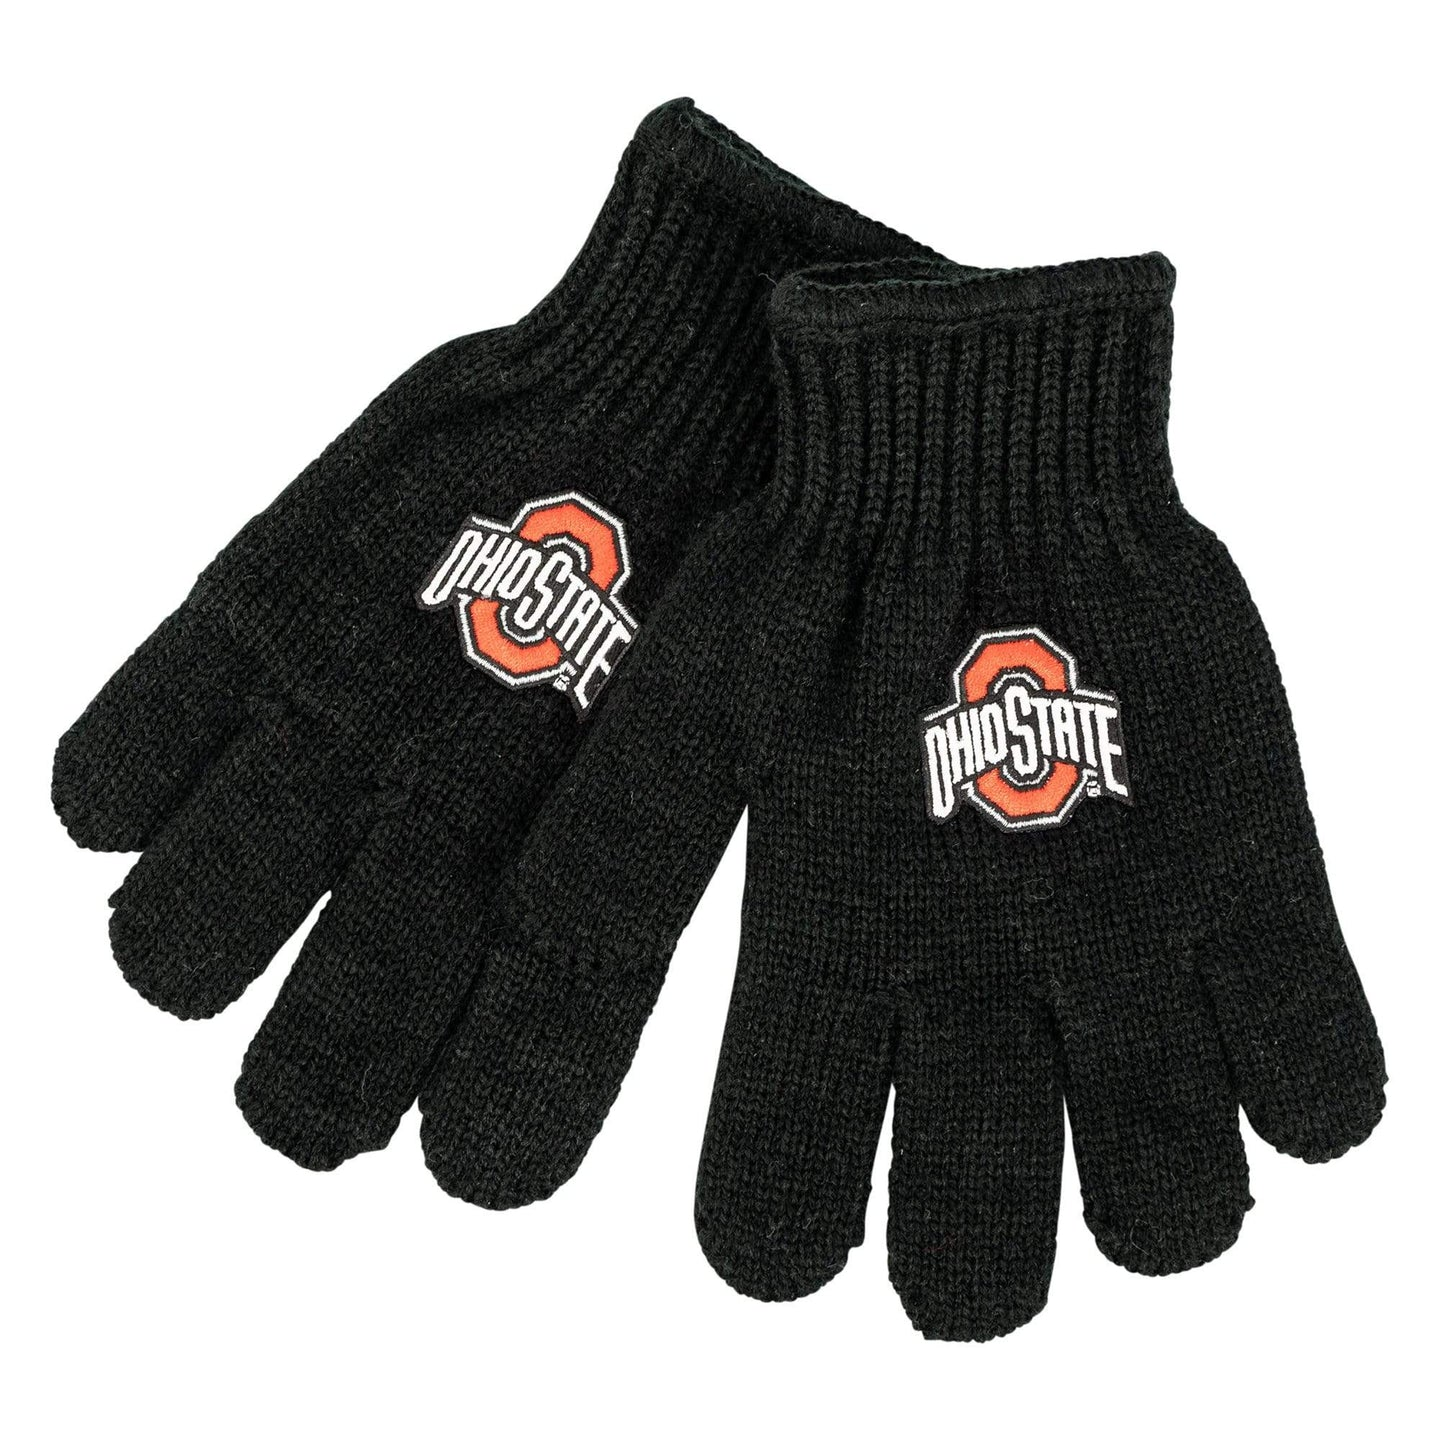 Ohio State Kid's Black Knit Gloves